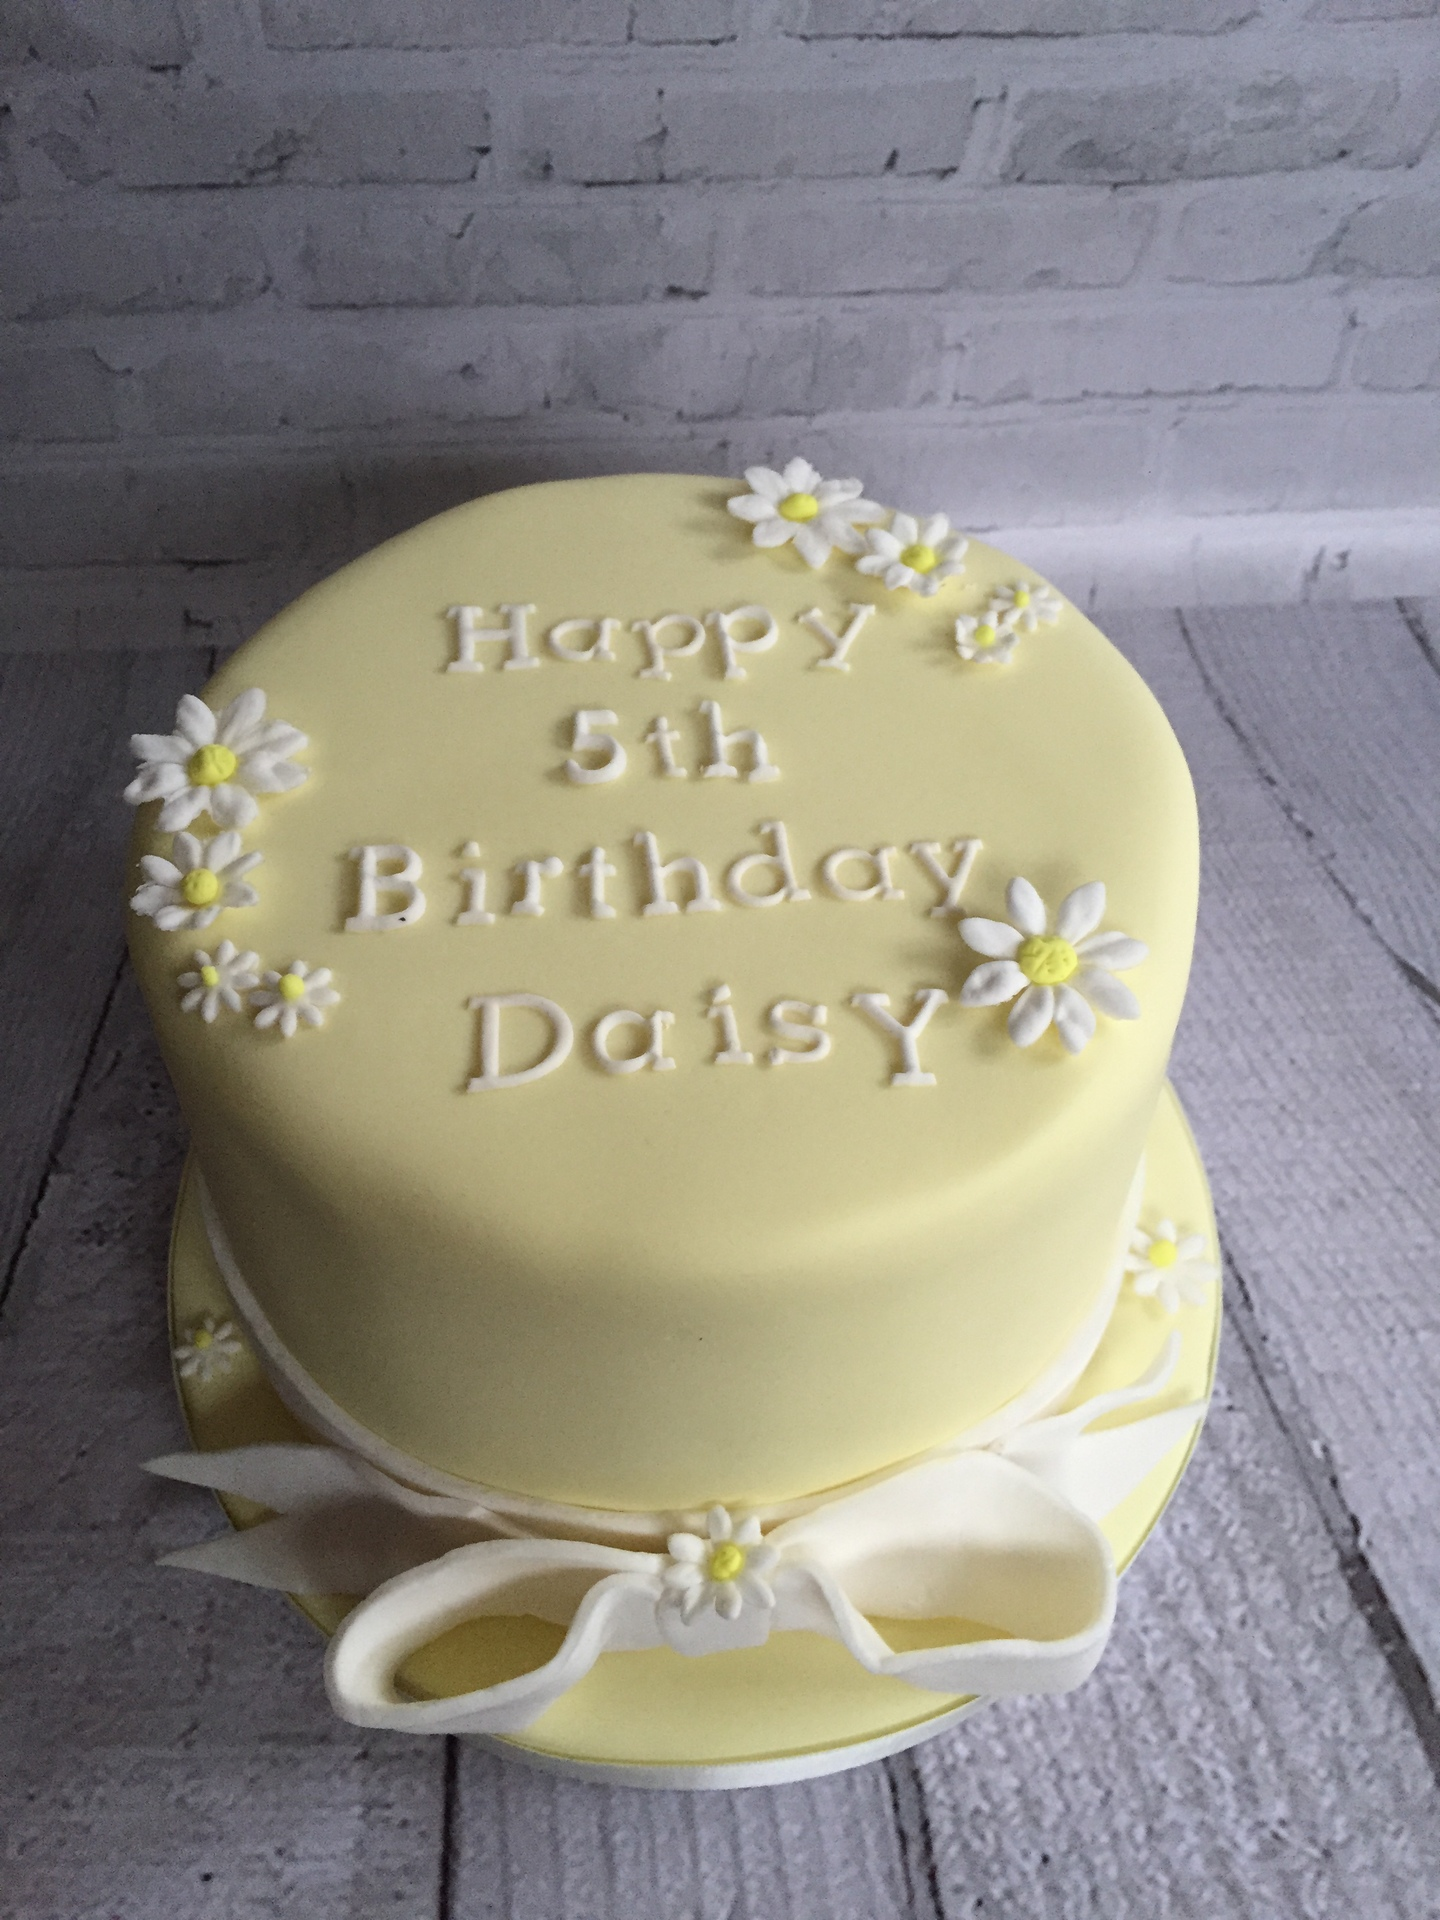 Prime The Cake Maker Dublin Bakers And Cakers Funny Birthday Cards Online Alyptdamsfinfo